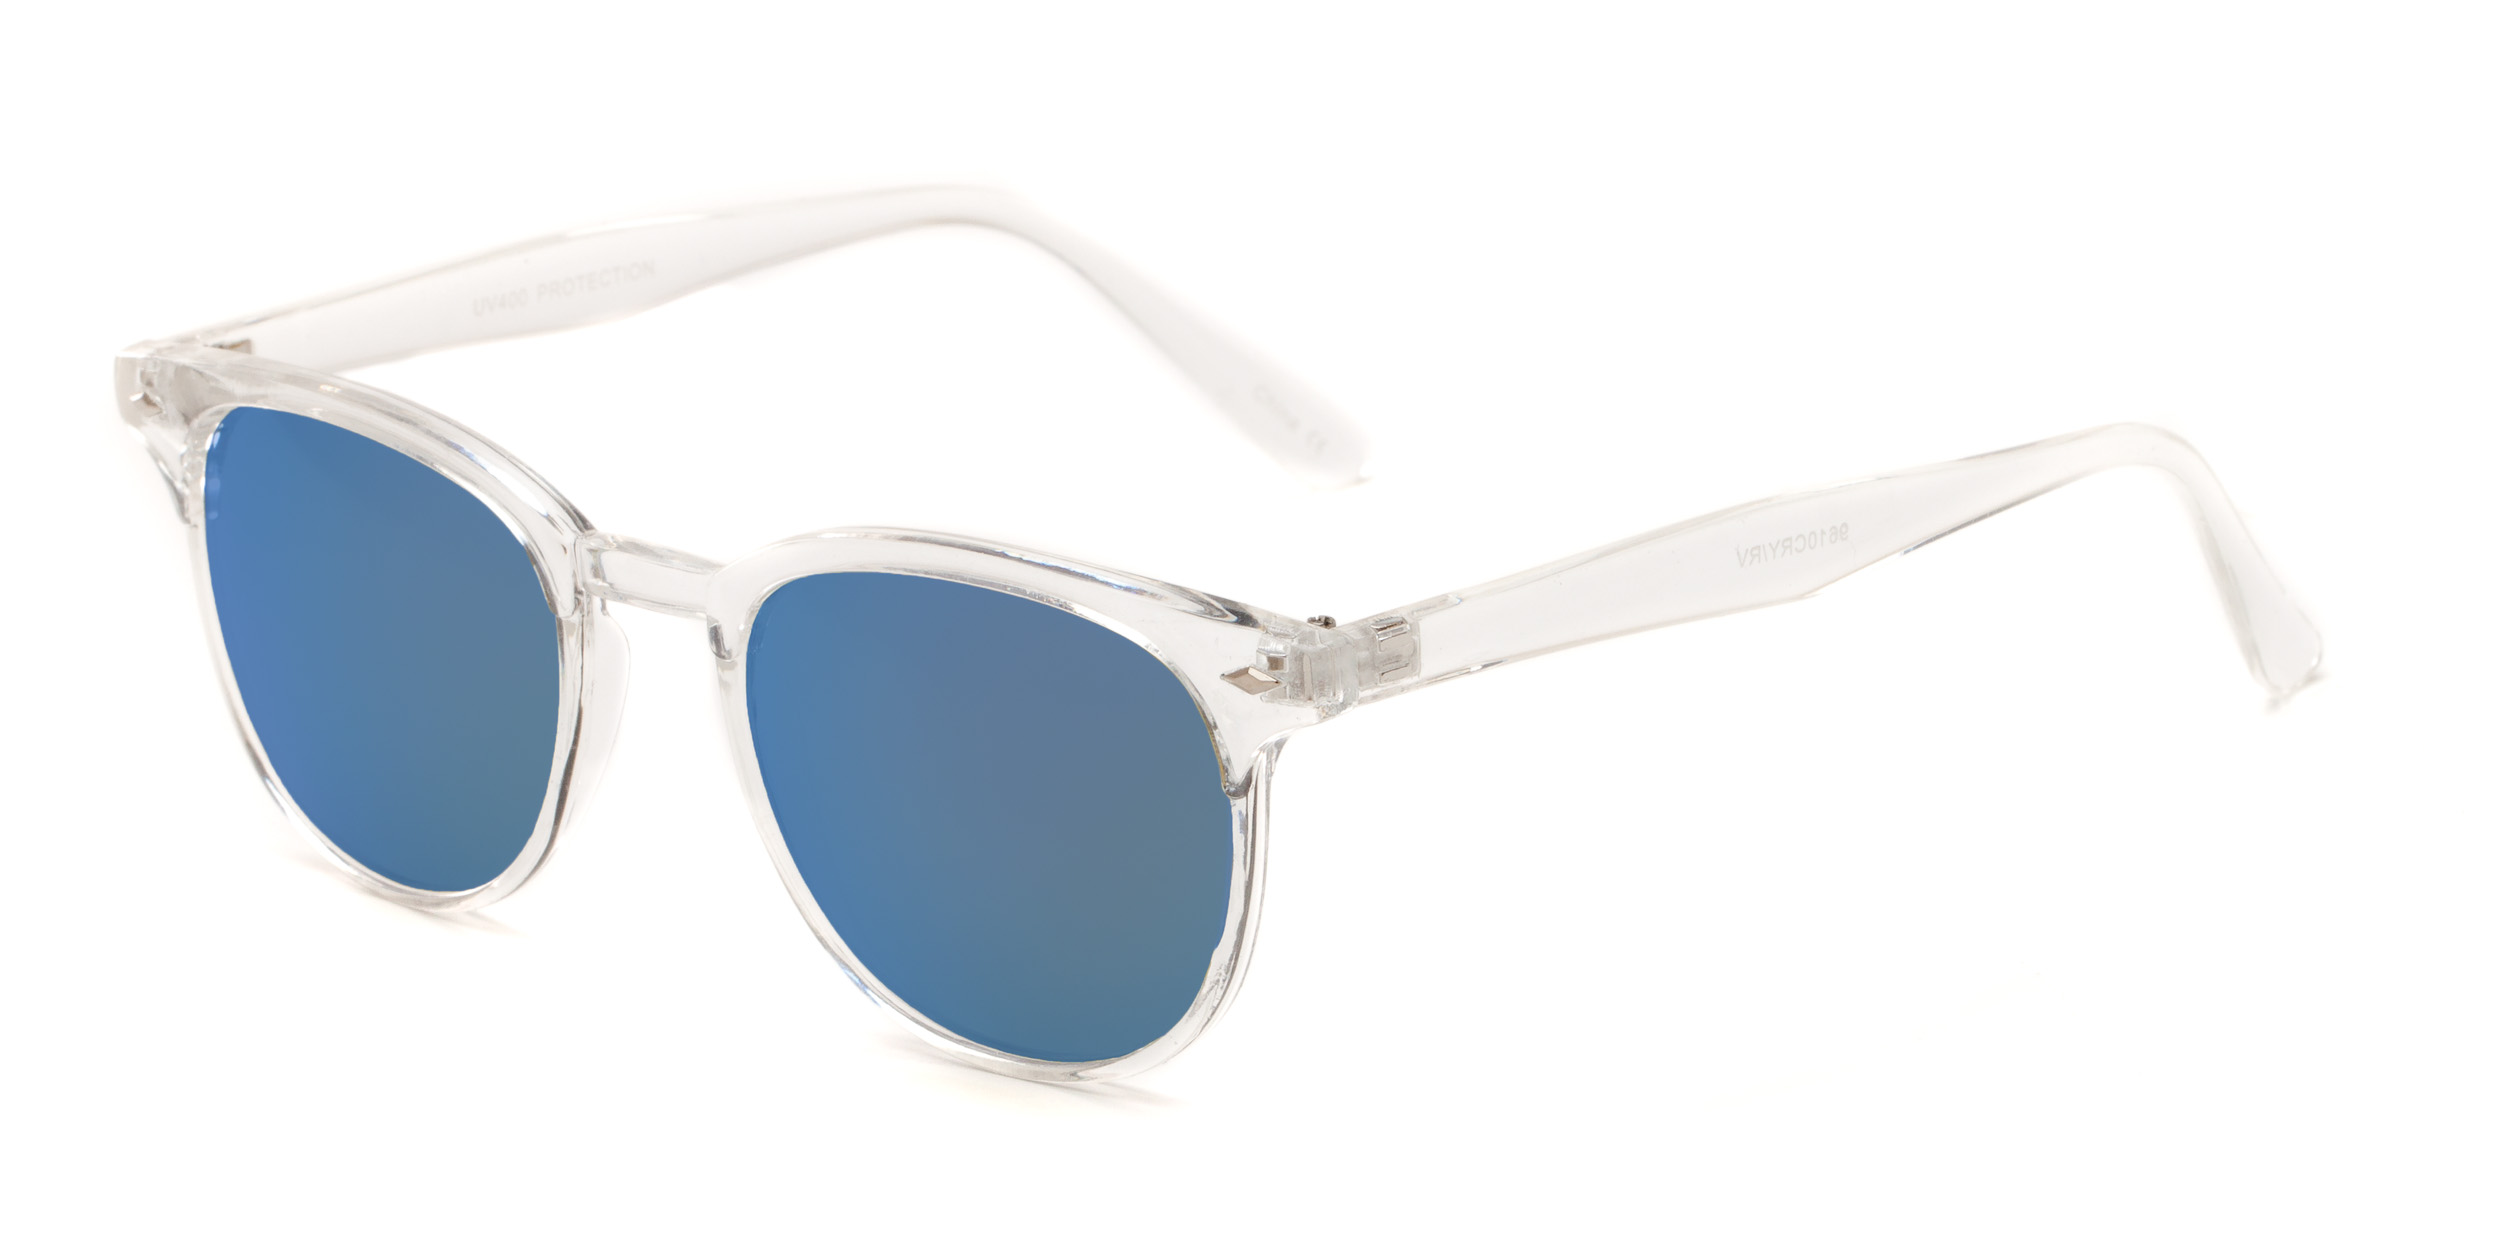 Glacier #127 Clear Frame with Blue Mirrored Lenses Sunglasses | eBay